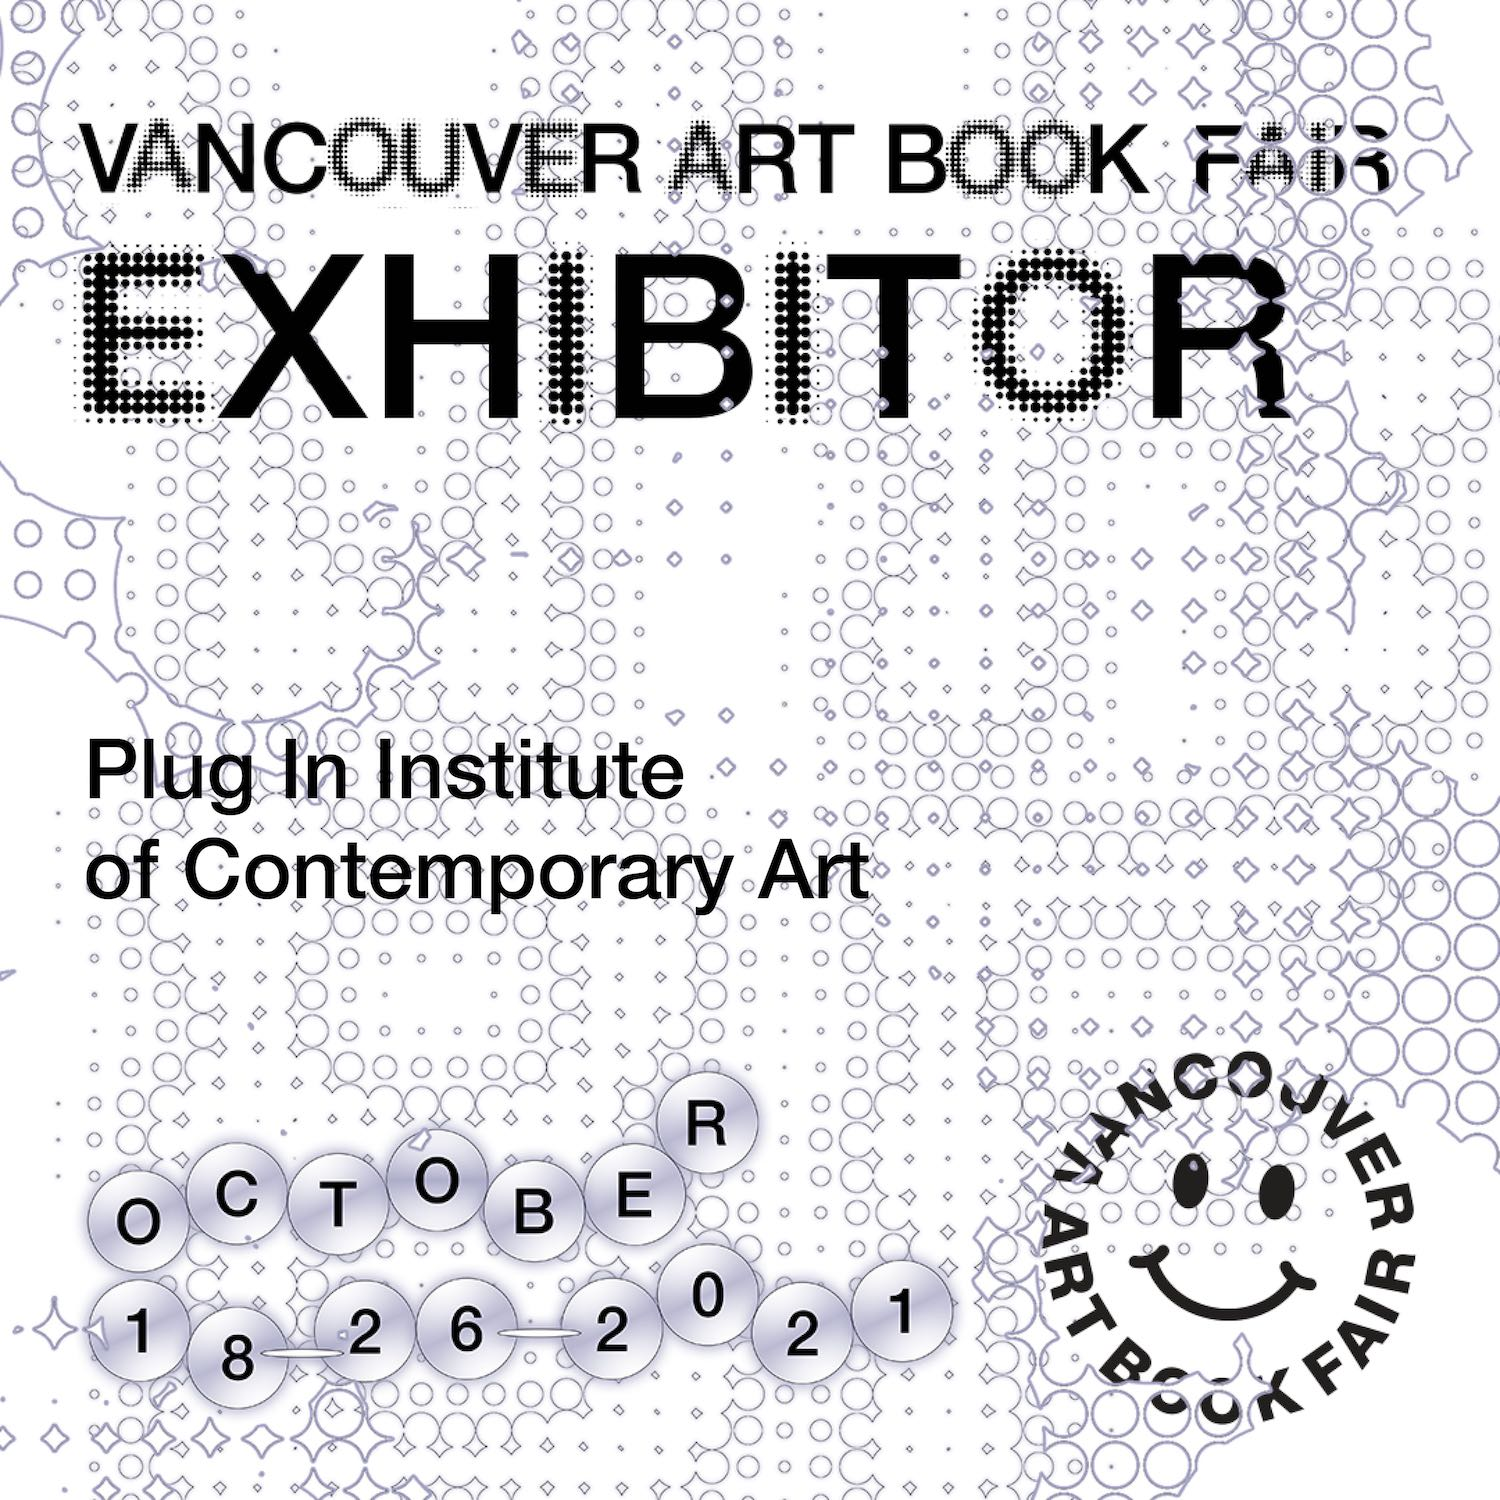 """Black and white graphic with text """"Vancouver Art Book Fair. Exhibitor. Plug In Institute of Contemporary Art. October 18-26, 2021"""""""